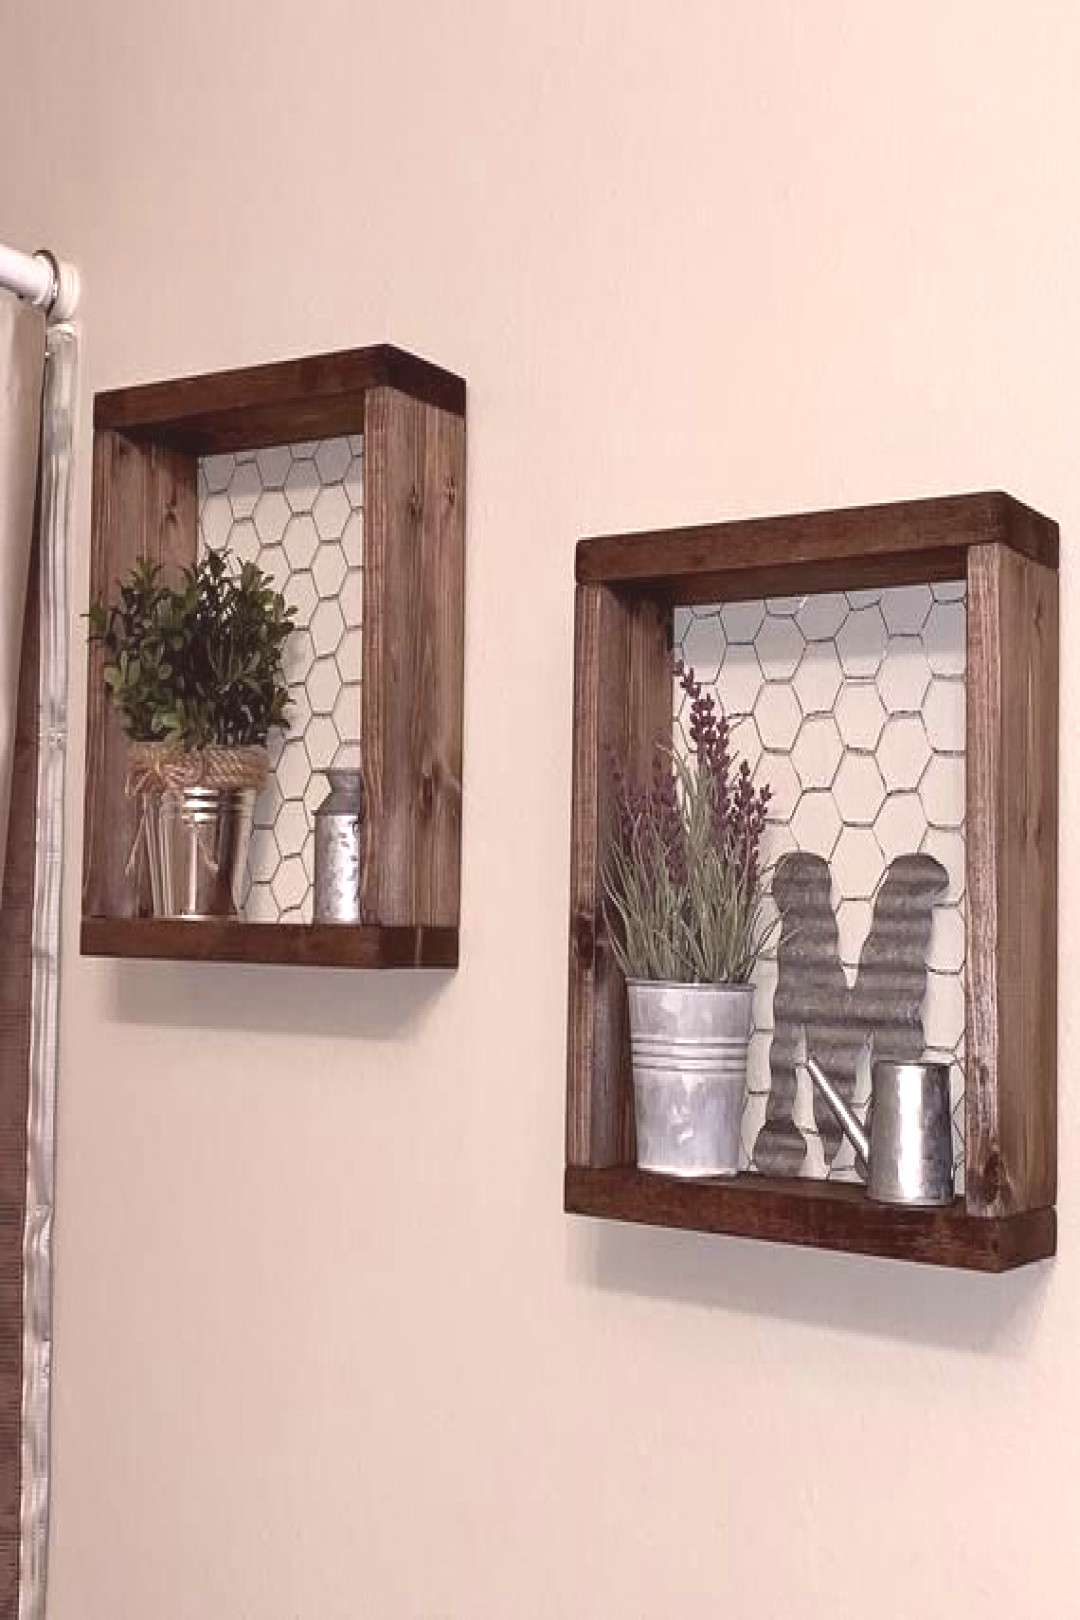 Farmhouse Style Shelves, Set of two Chicken Wire Shelves, Gallery Wall Decor, Bathroom Wall Decor F